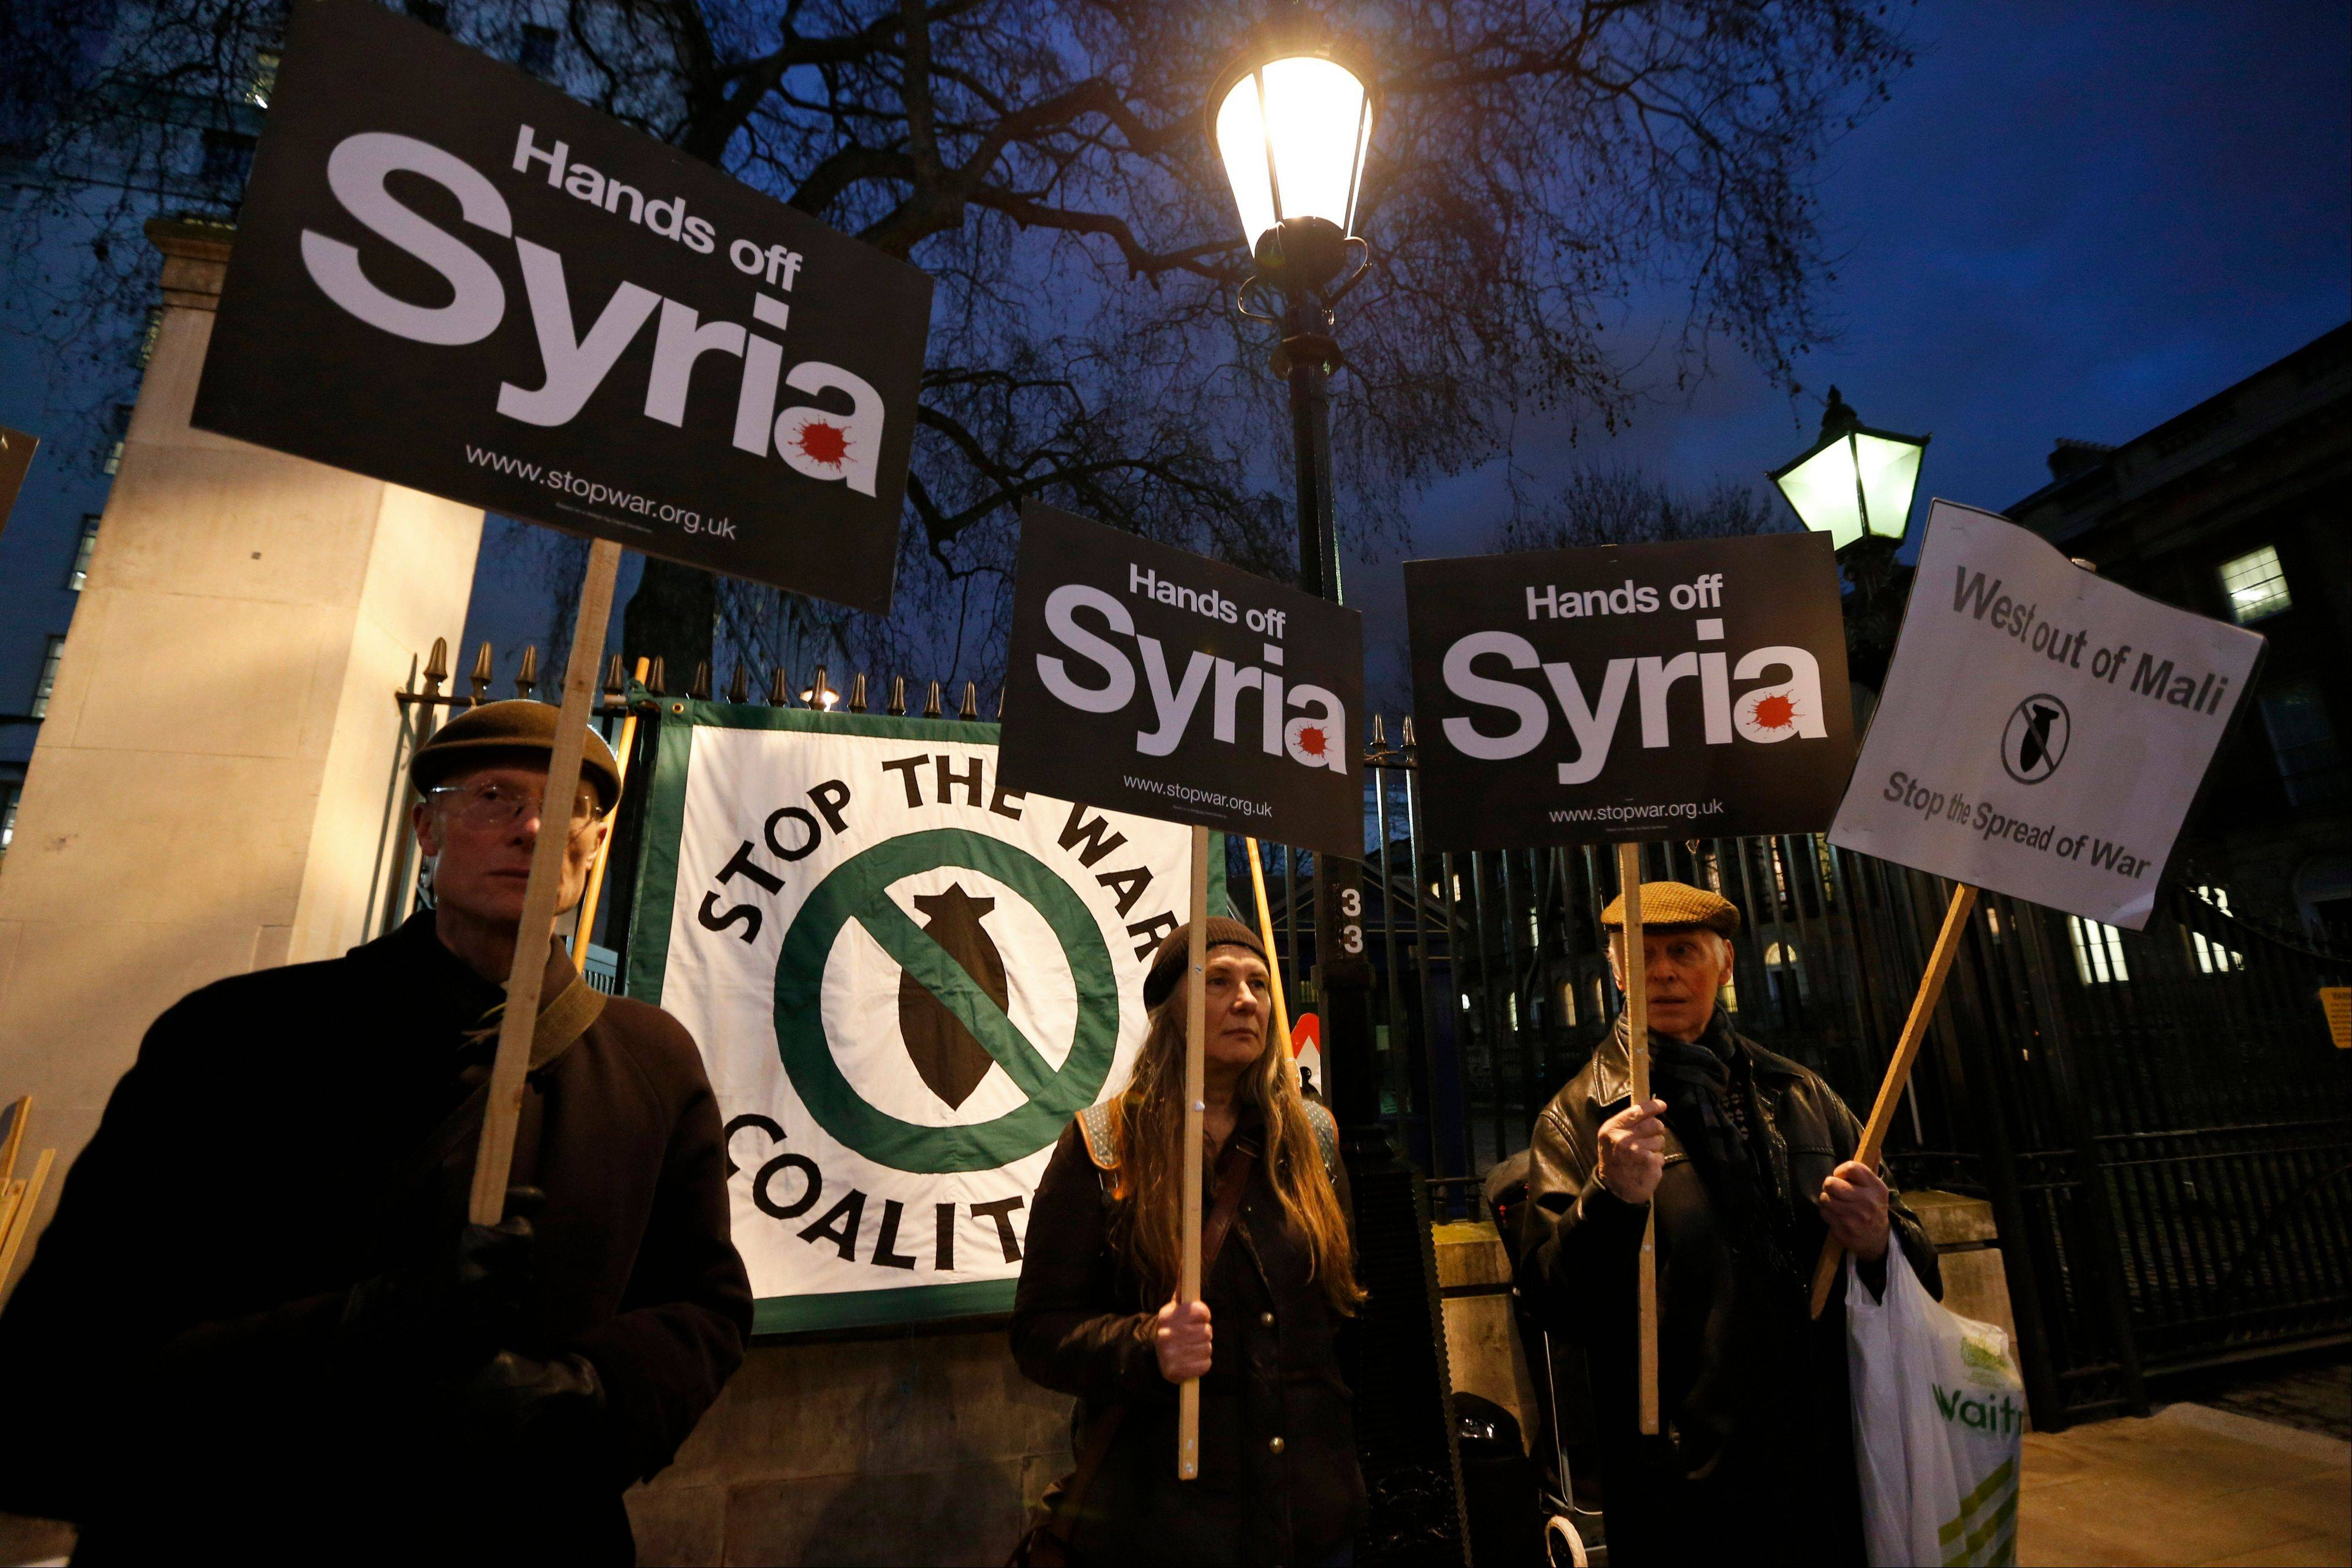 Anti-war protesters from the Stop the War Coalition hold placards Friday night during a rally against western intervention in Syria and calling for western troops to leave Mali, on the 10th anniversary of the march to stop the war in Iraq, opposite the official residence of the British prime minister, in central London.